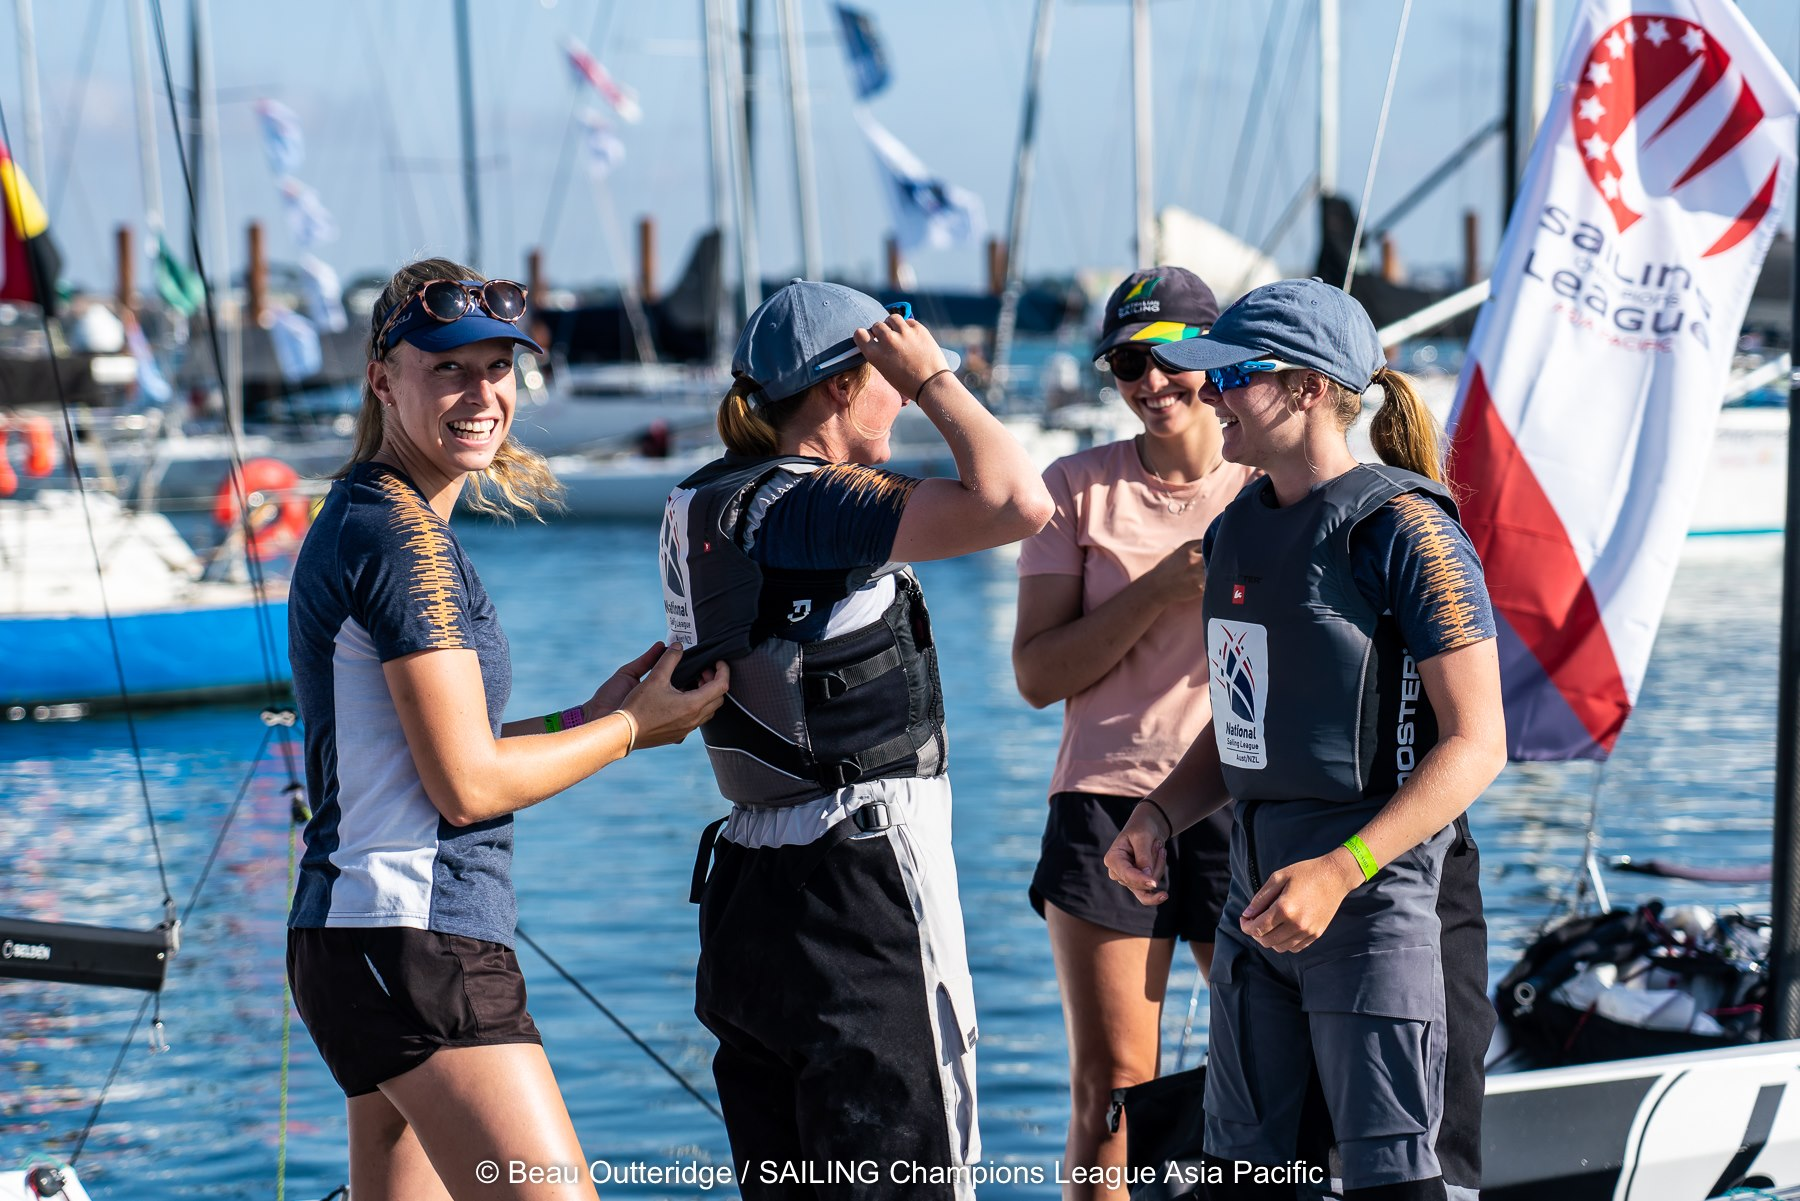 sailing champions league geelong 2020 january